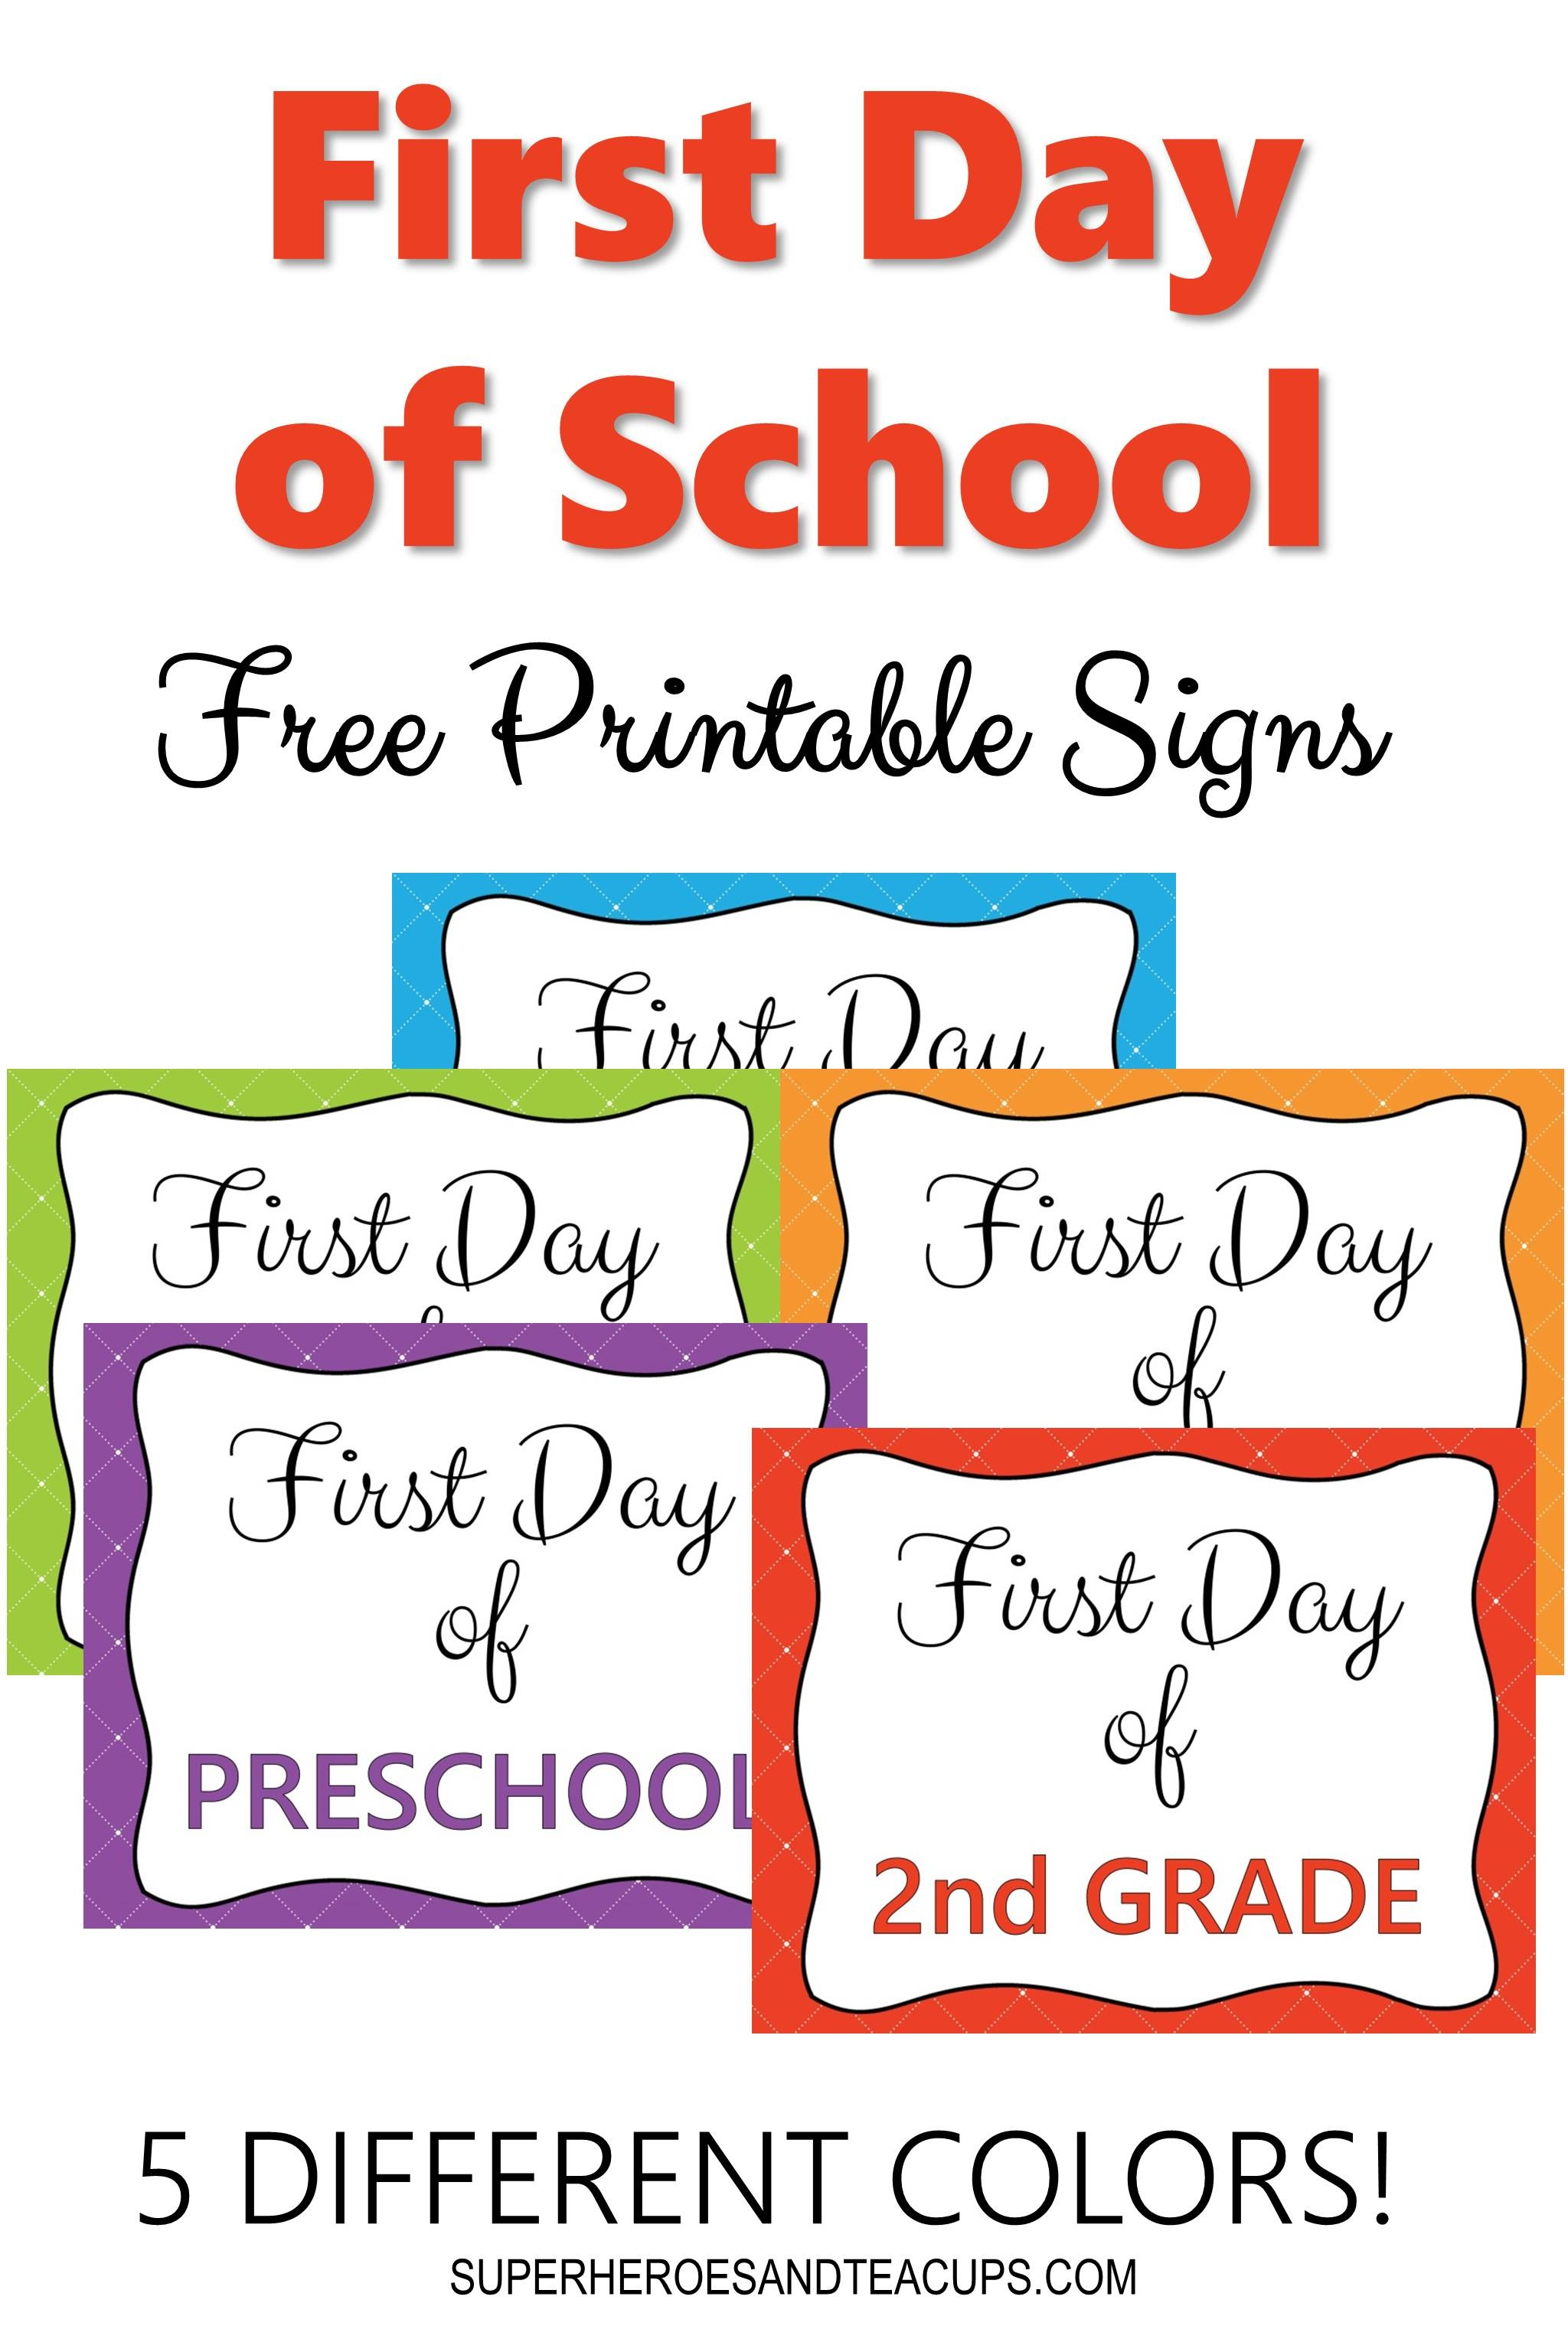 First Day Of School Signs Free Printable For Every Grade - Free Printable First Day Of School Signs